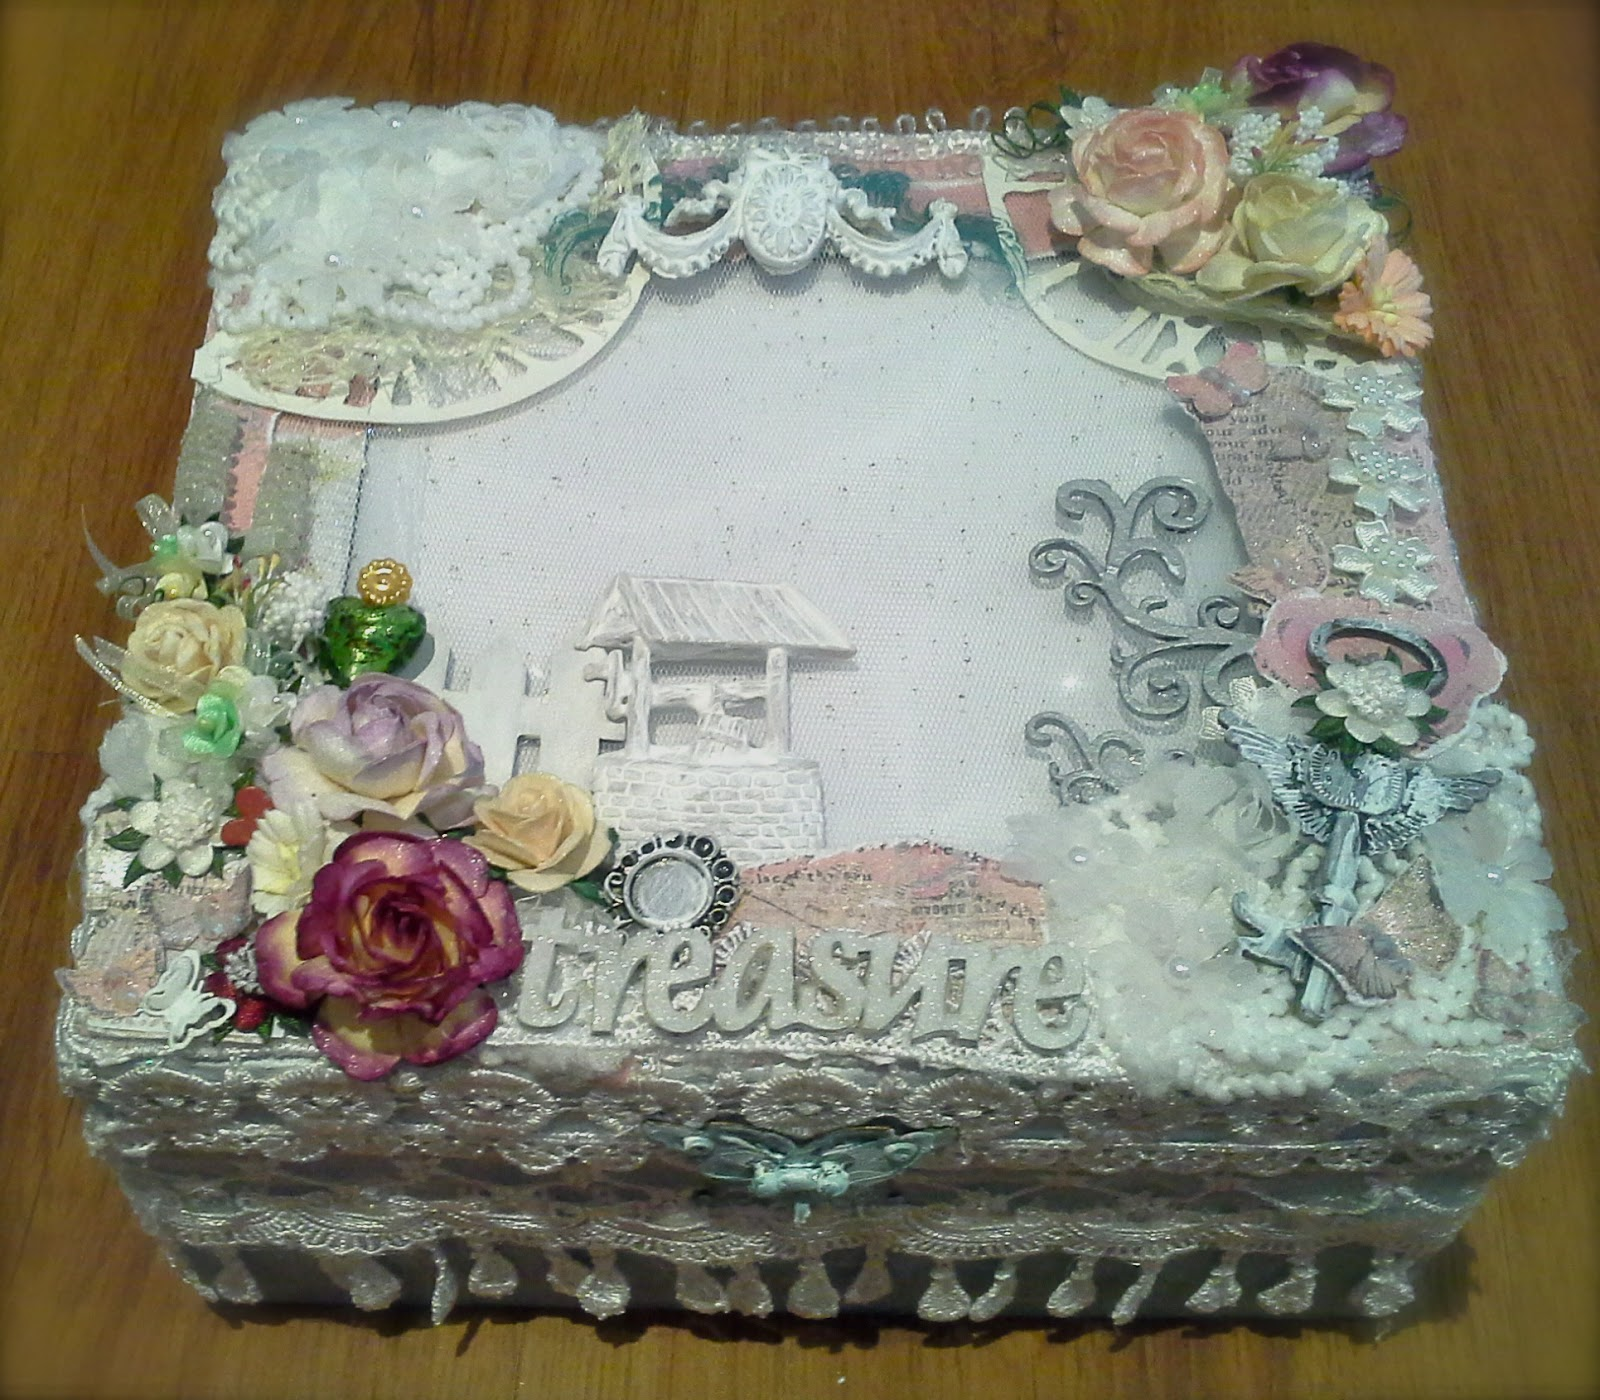 walk with god 39 s favor shabby chic tea box. Black Bedroom Furniture Sets. Home Design Ideas